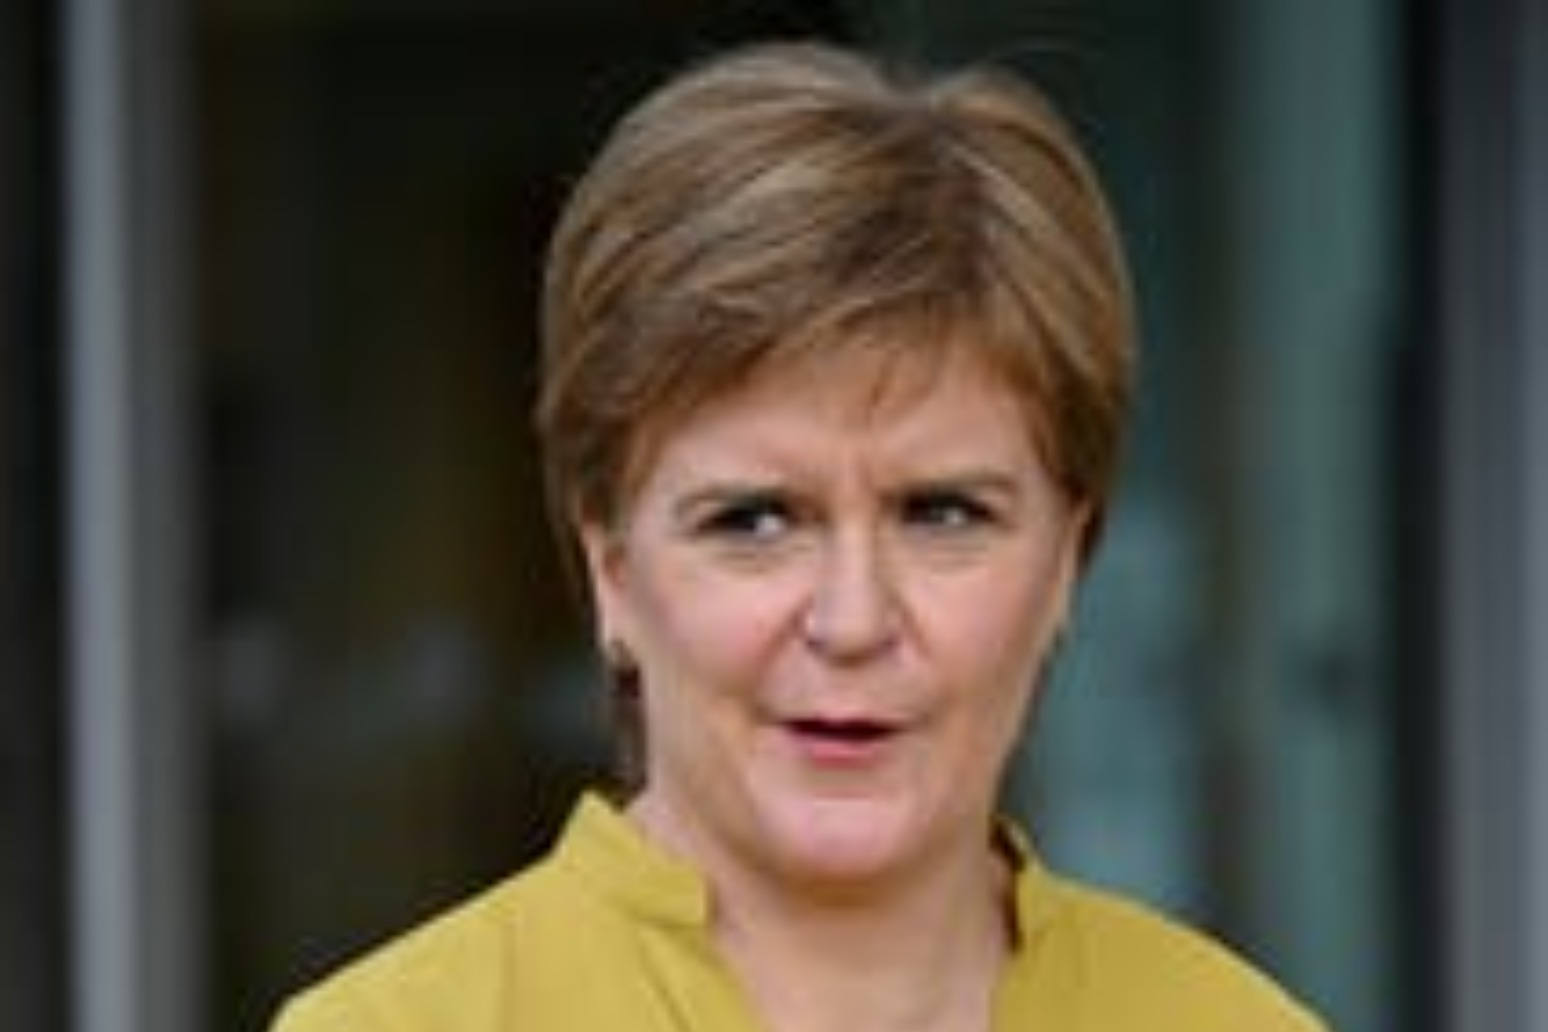 Nicola Sturgeon ends self-isolation after negative Covid test result.